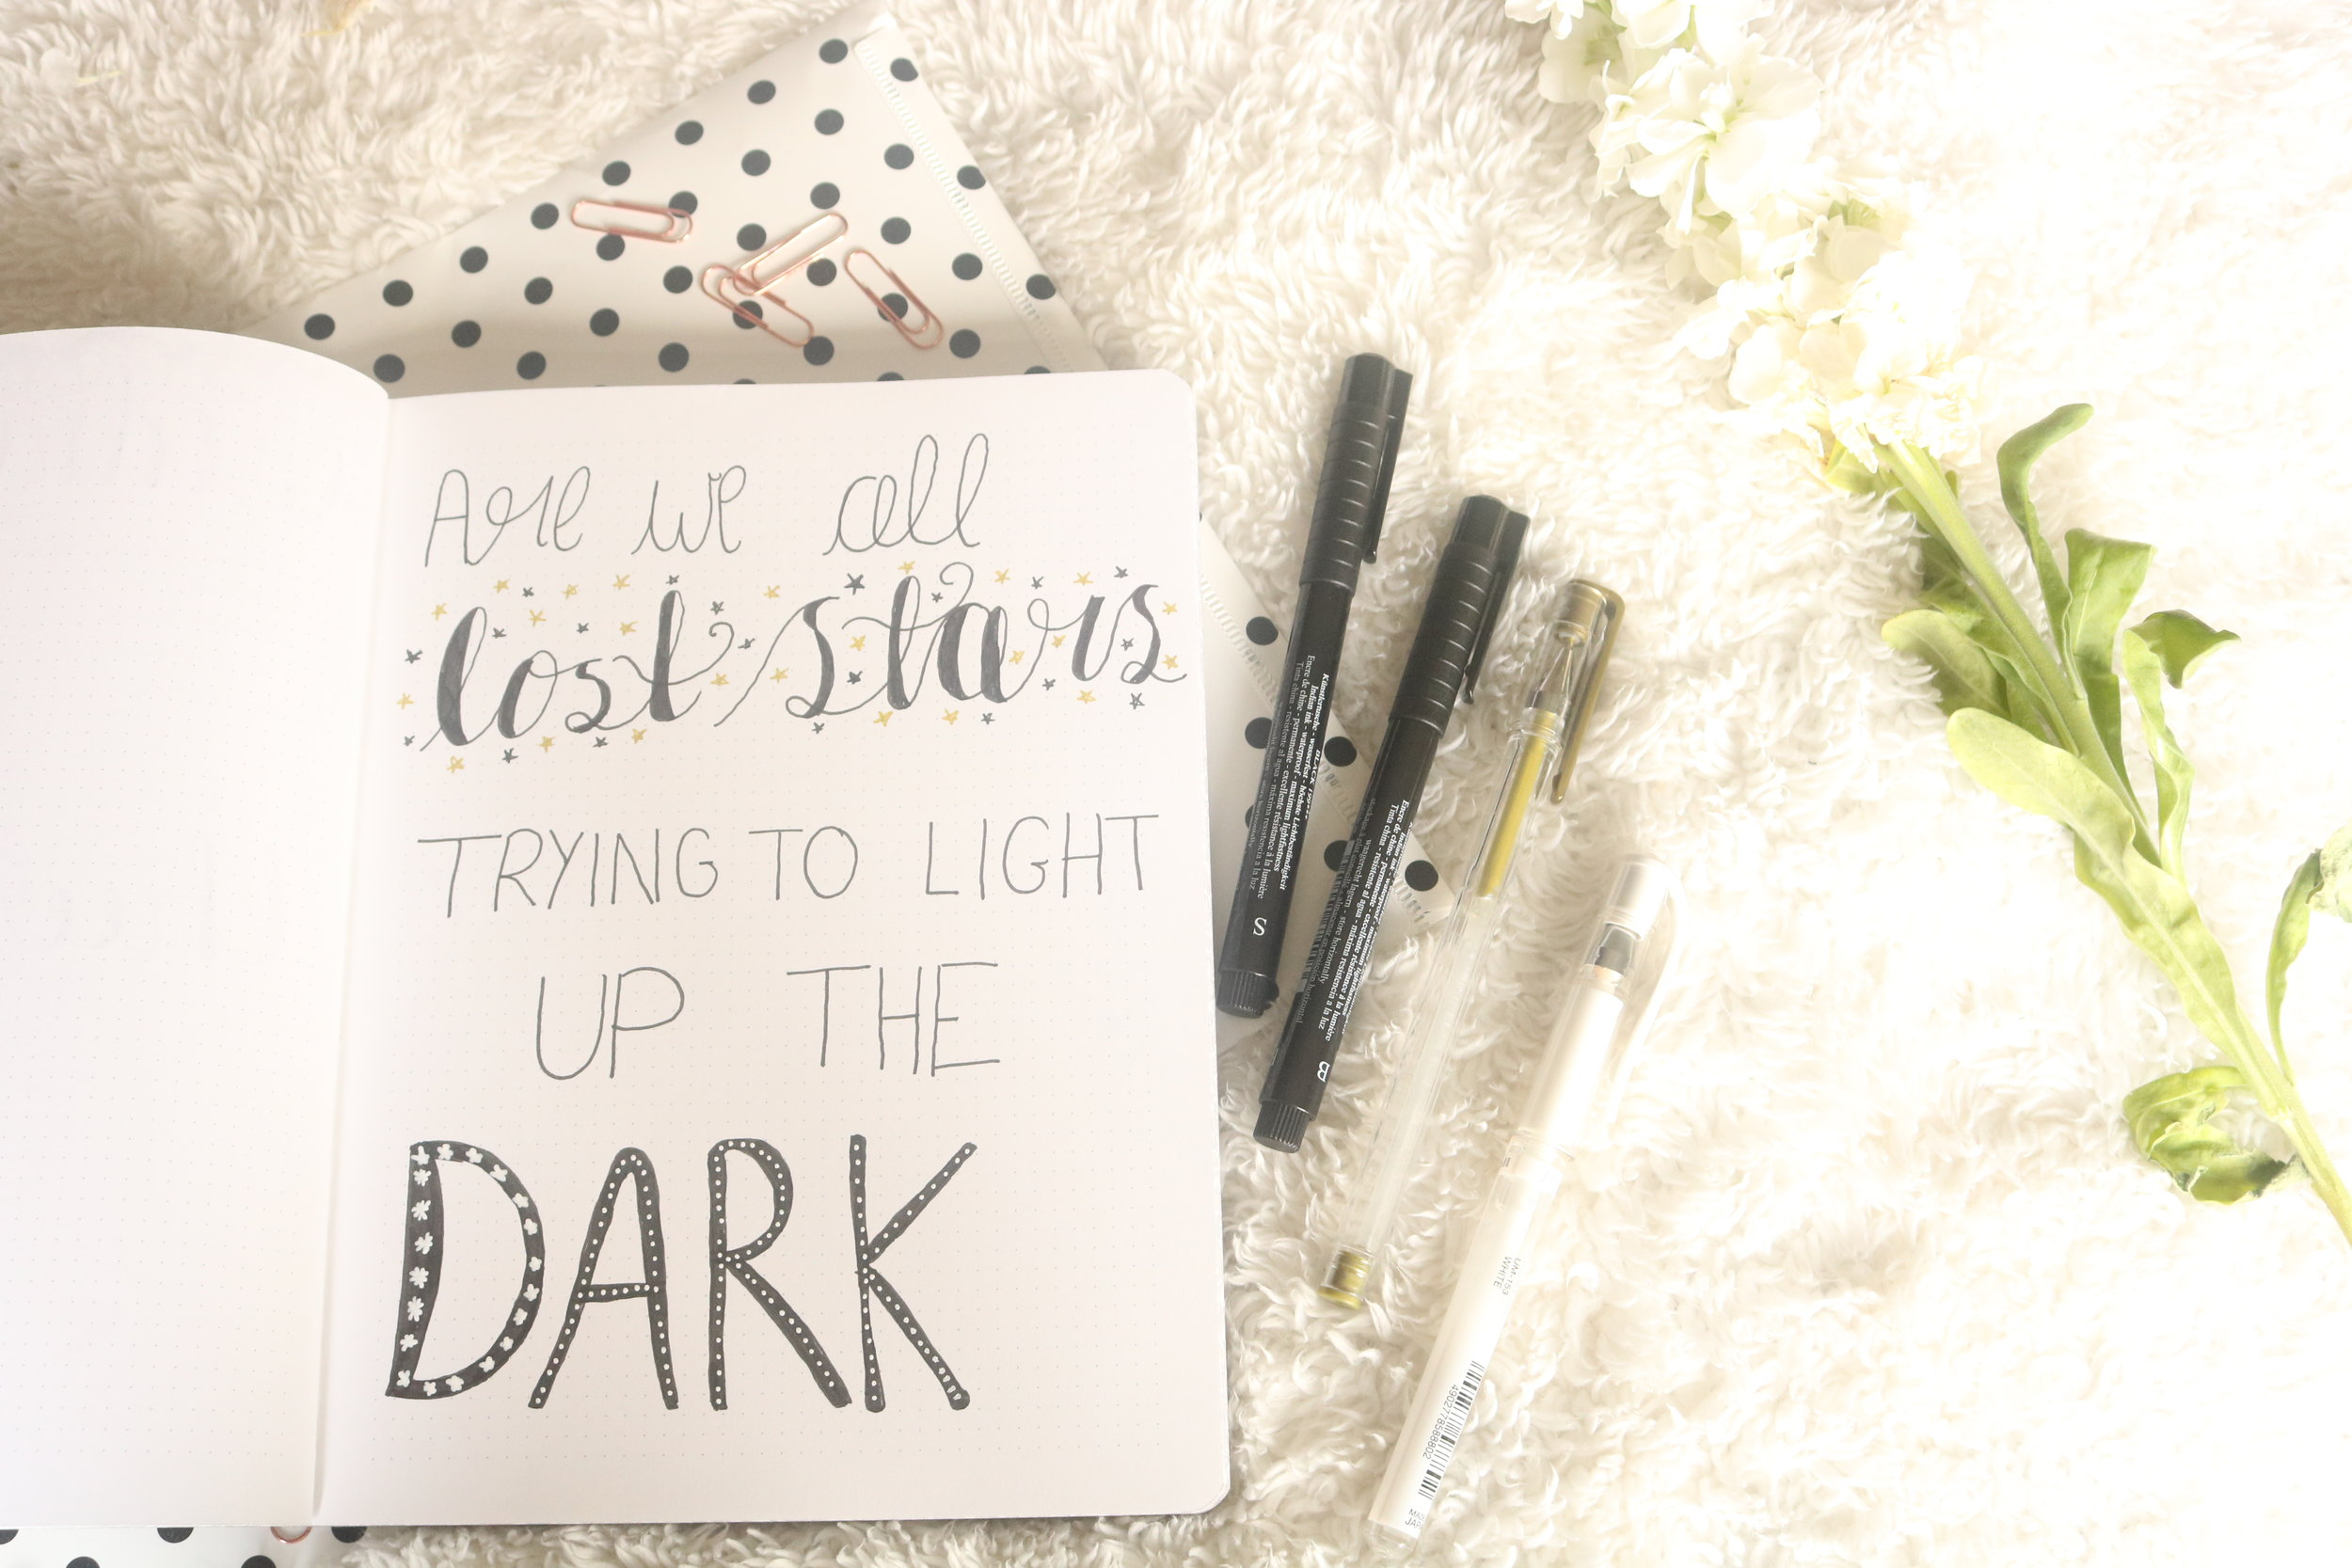 Are We All Lost Stars Trying To Light Up The Dark? patternedpetals